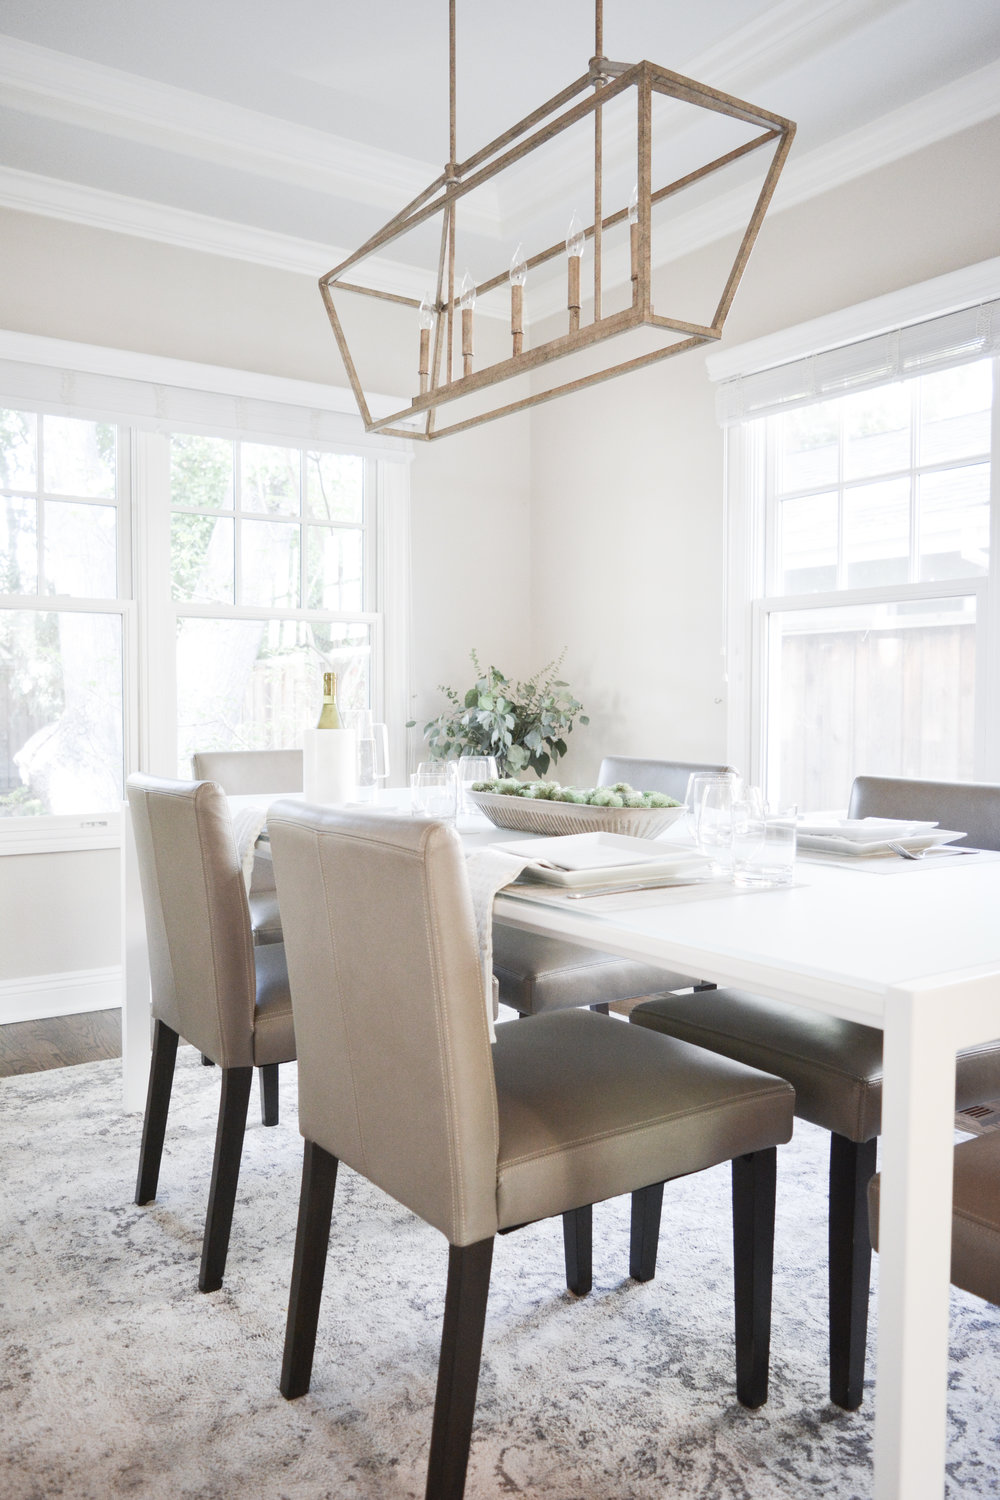 Angela Grace Design // Cambridge Dining Room // San Francisco and SF Bay Area Interior Designer, Decorator